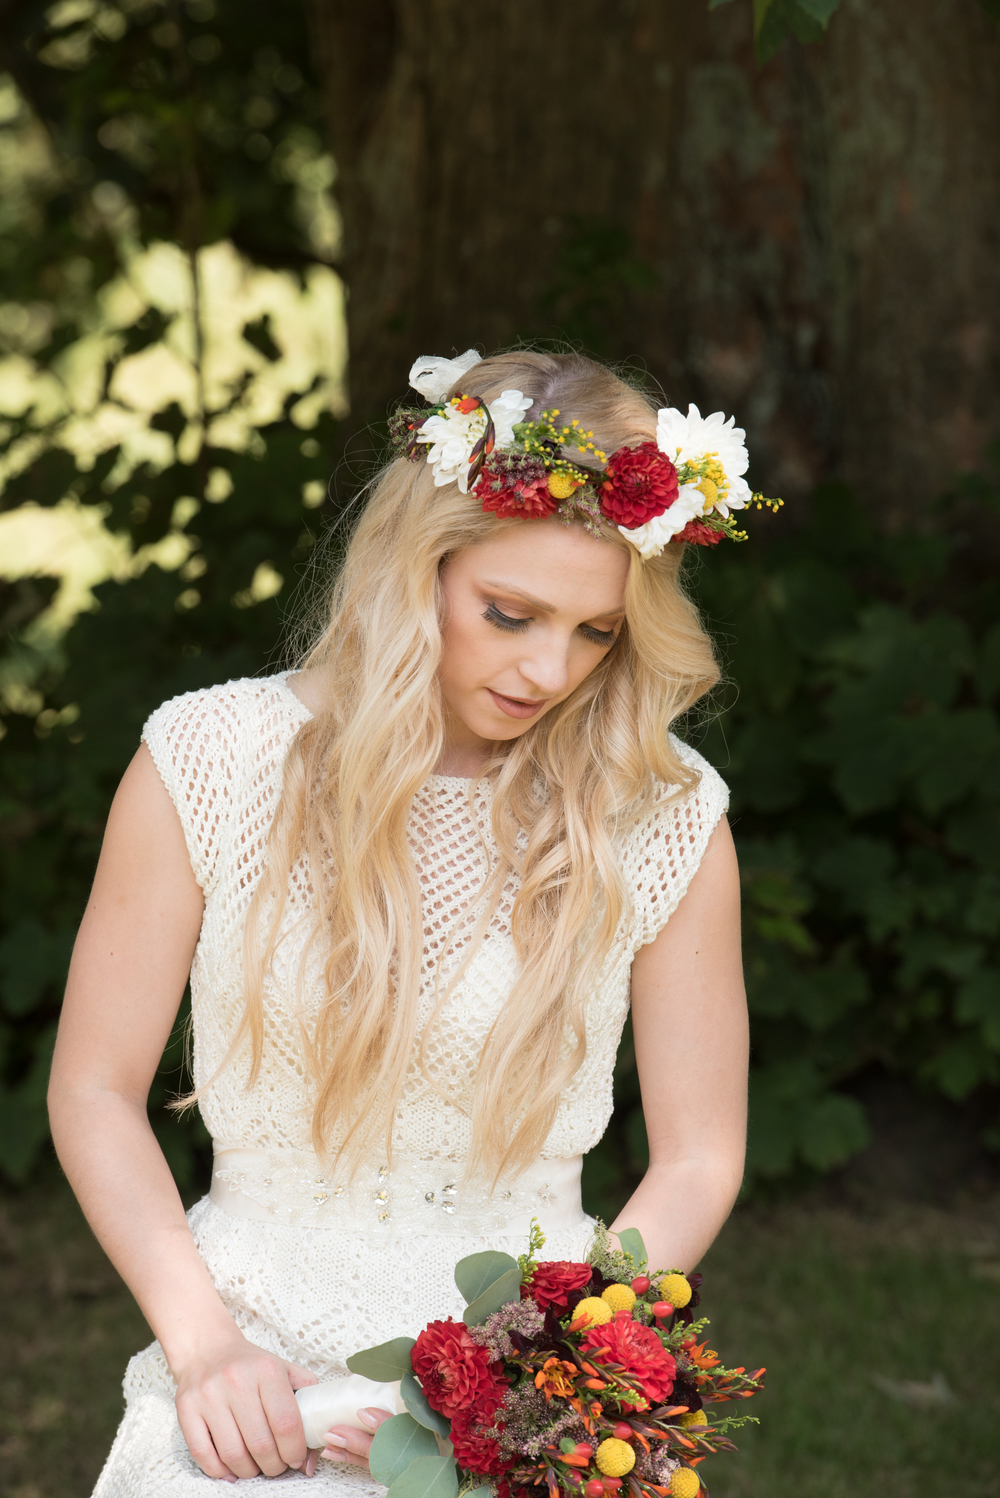 the-robing-room-westernhanger-castle-yvette-craig-photography-the-wedding-flower-company-17